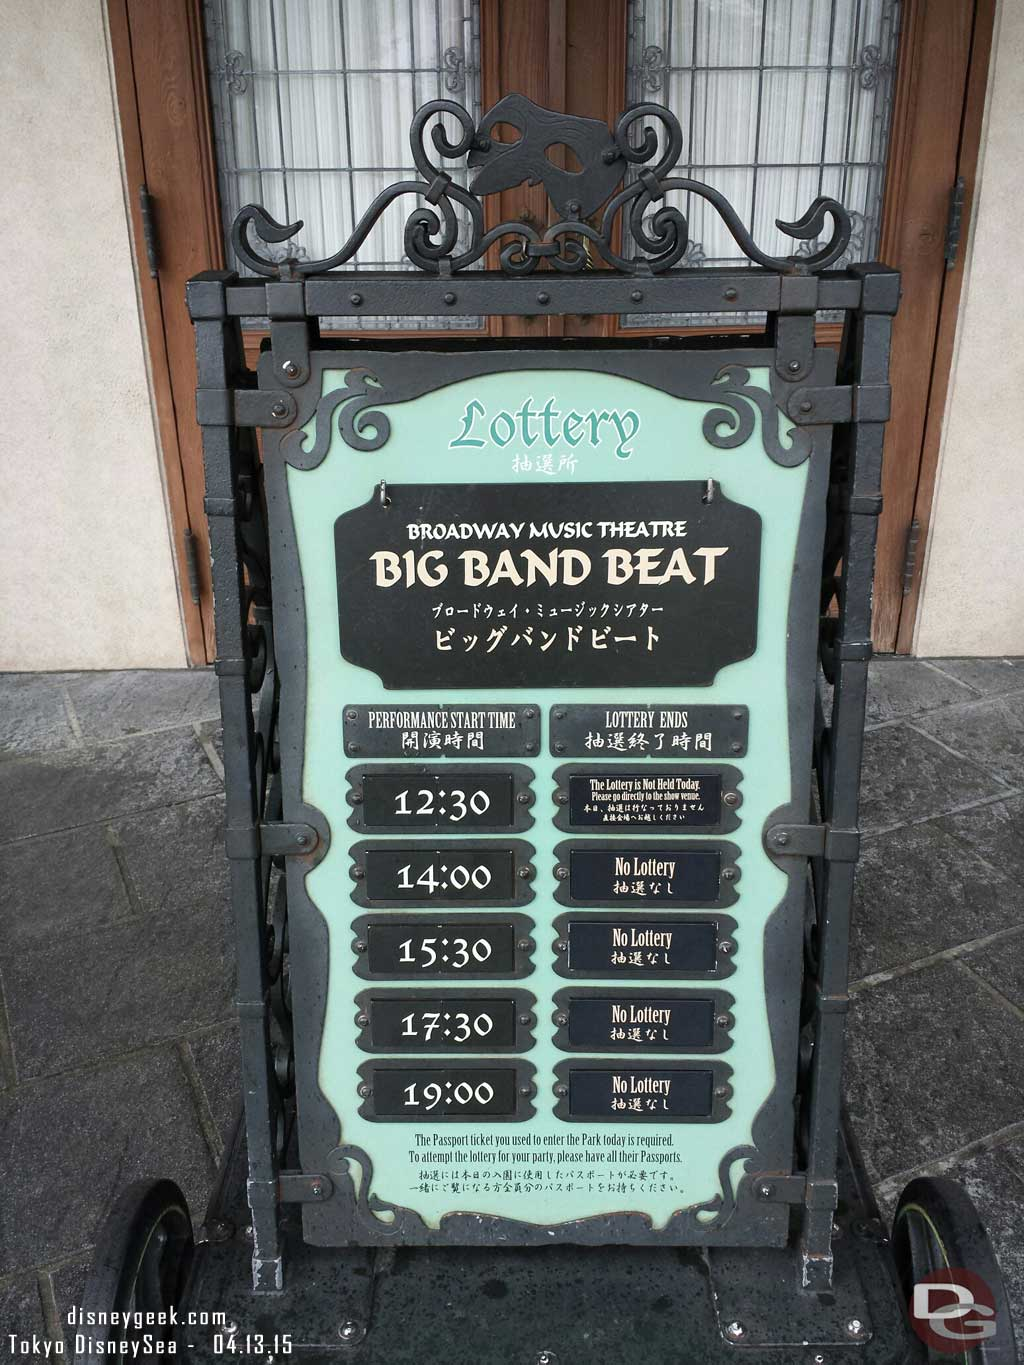 No lottery for Big Band Beat today, all are standby #TokyoDisneySea